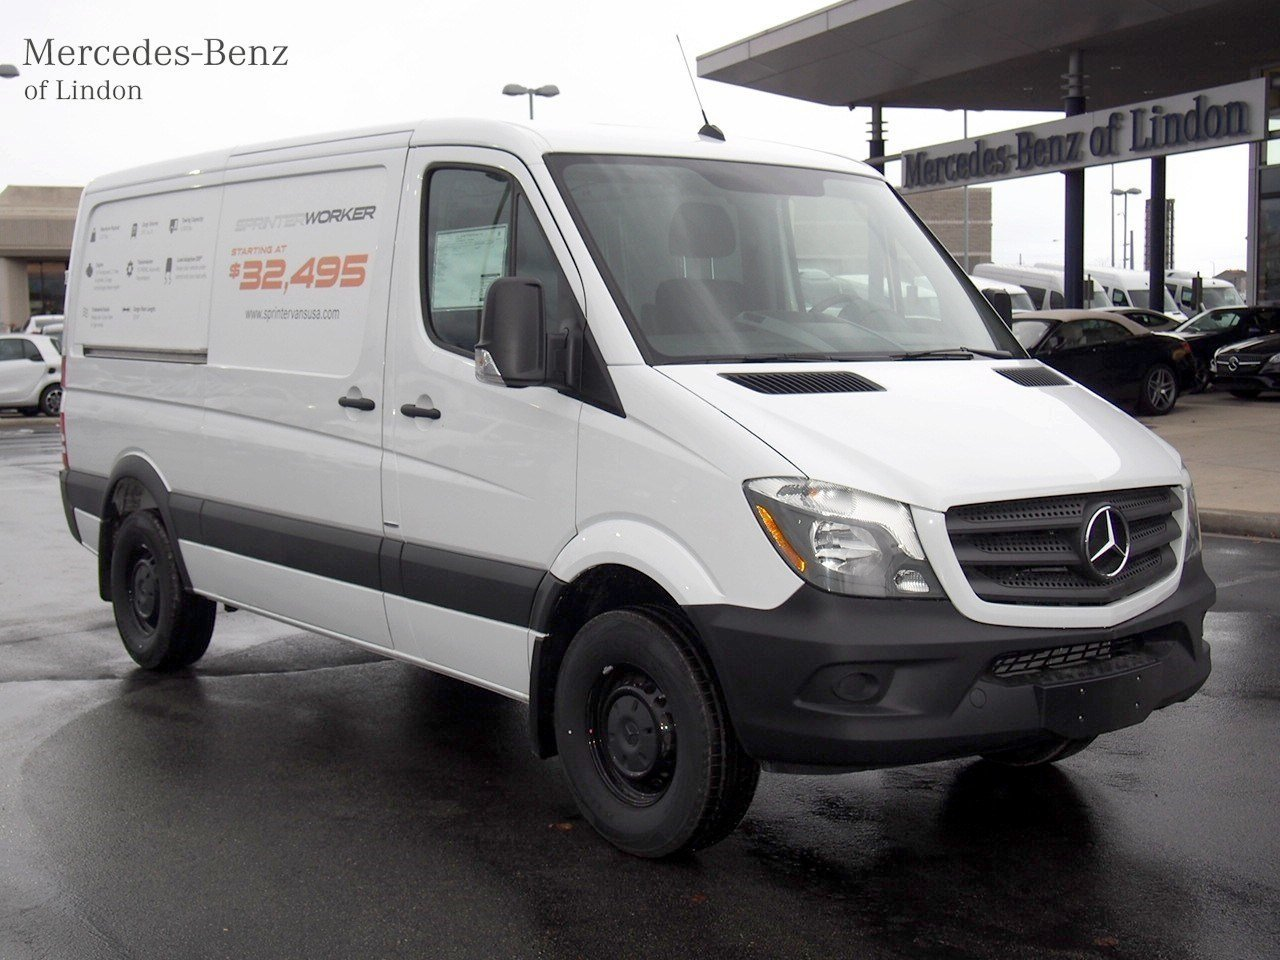 New 2016 mercedes benz sprinter cargo vans worker cargo for New mercedes benz sprinter